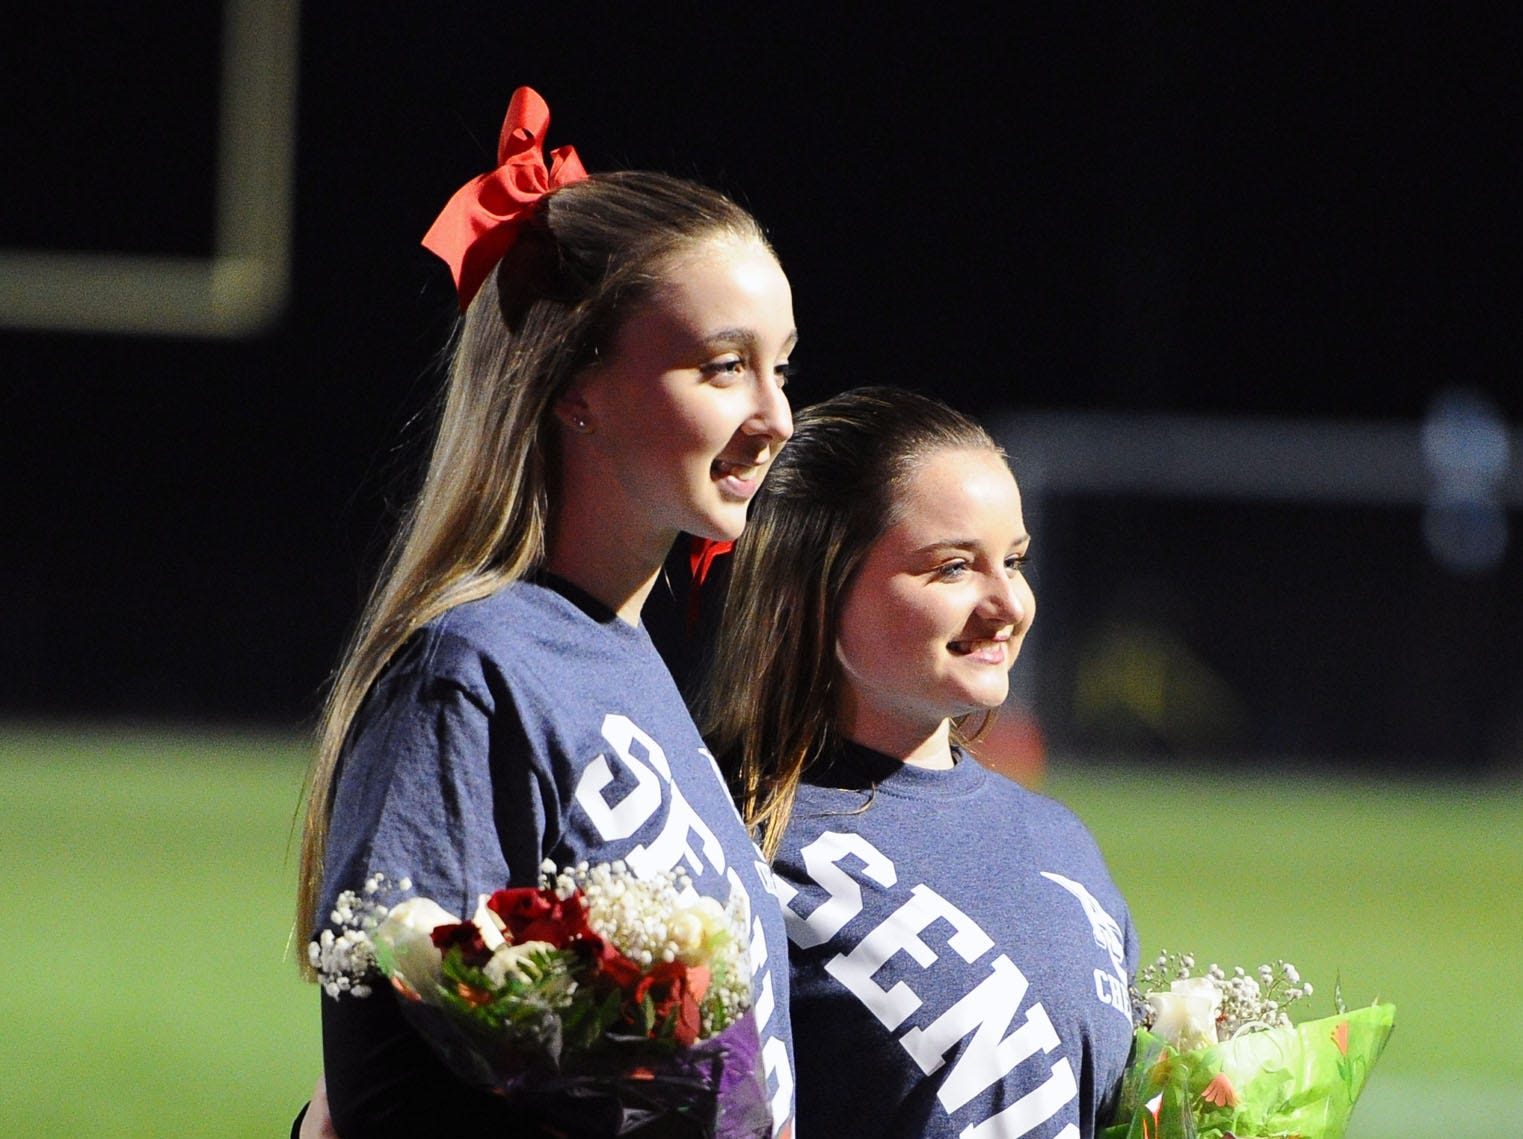 Two of the senior cheerleaders pose for a photo on Senior Night before a game played Friday Oct.19,2018 at Annville Cleona H.S.